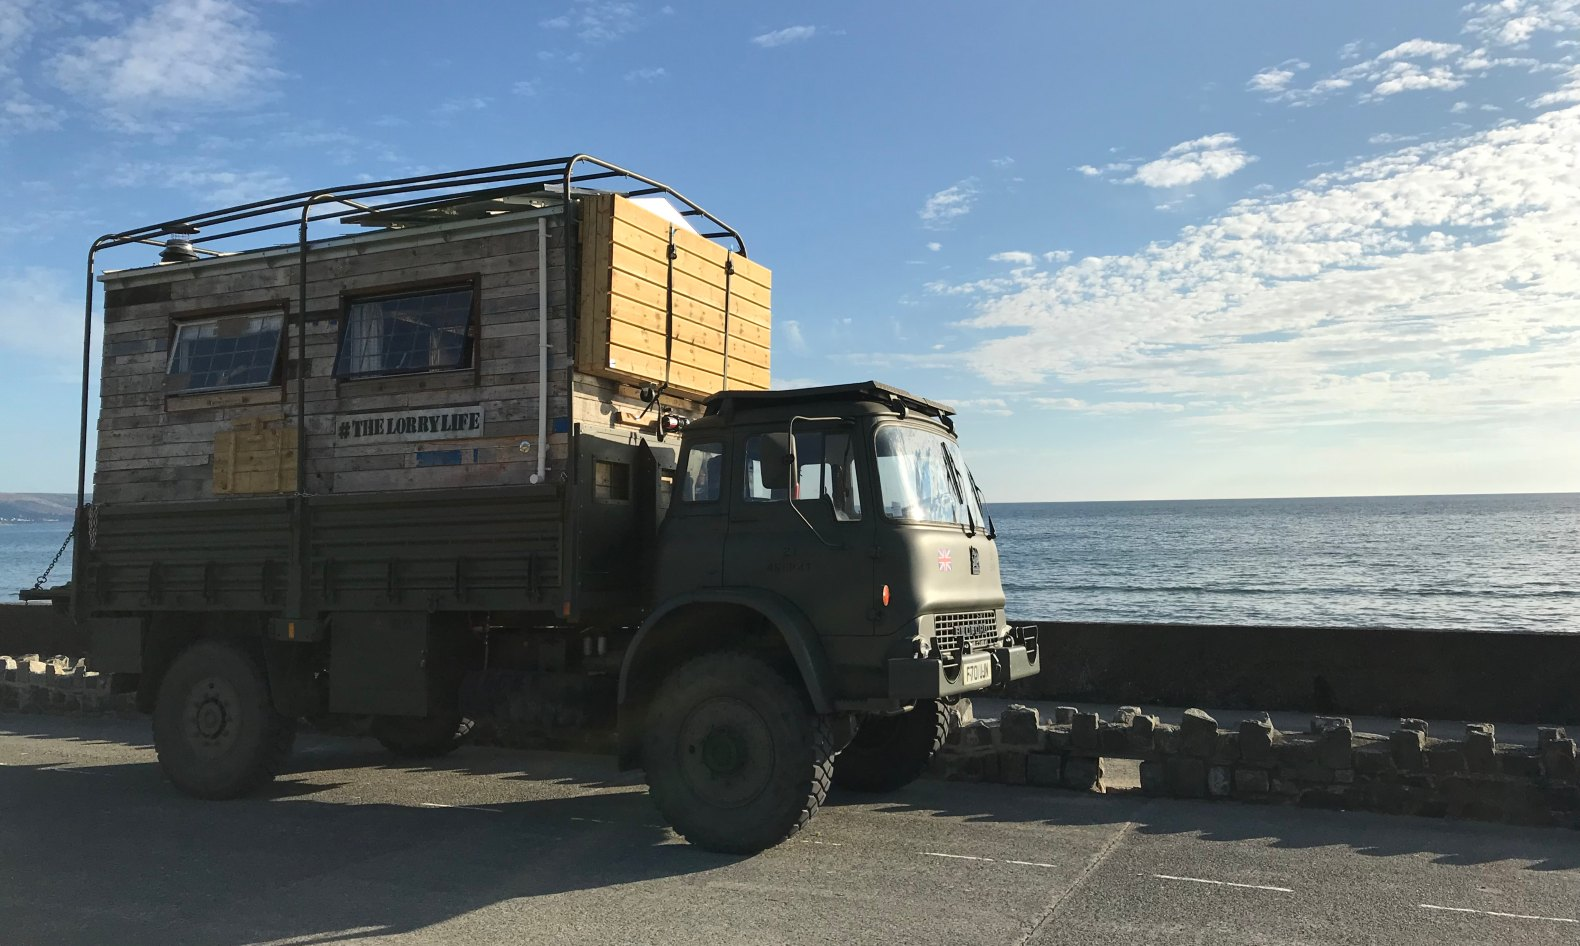 Couple transform old army truck into 72-square-foot off-grid home on wheels